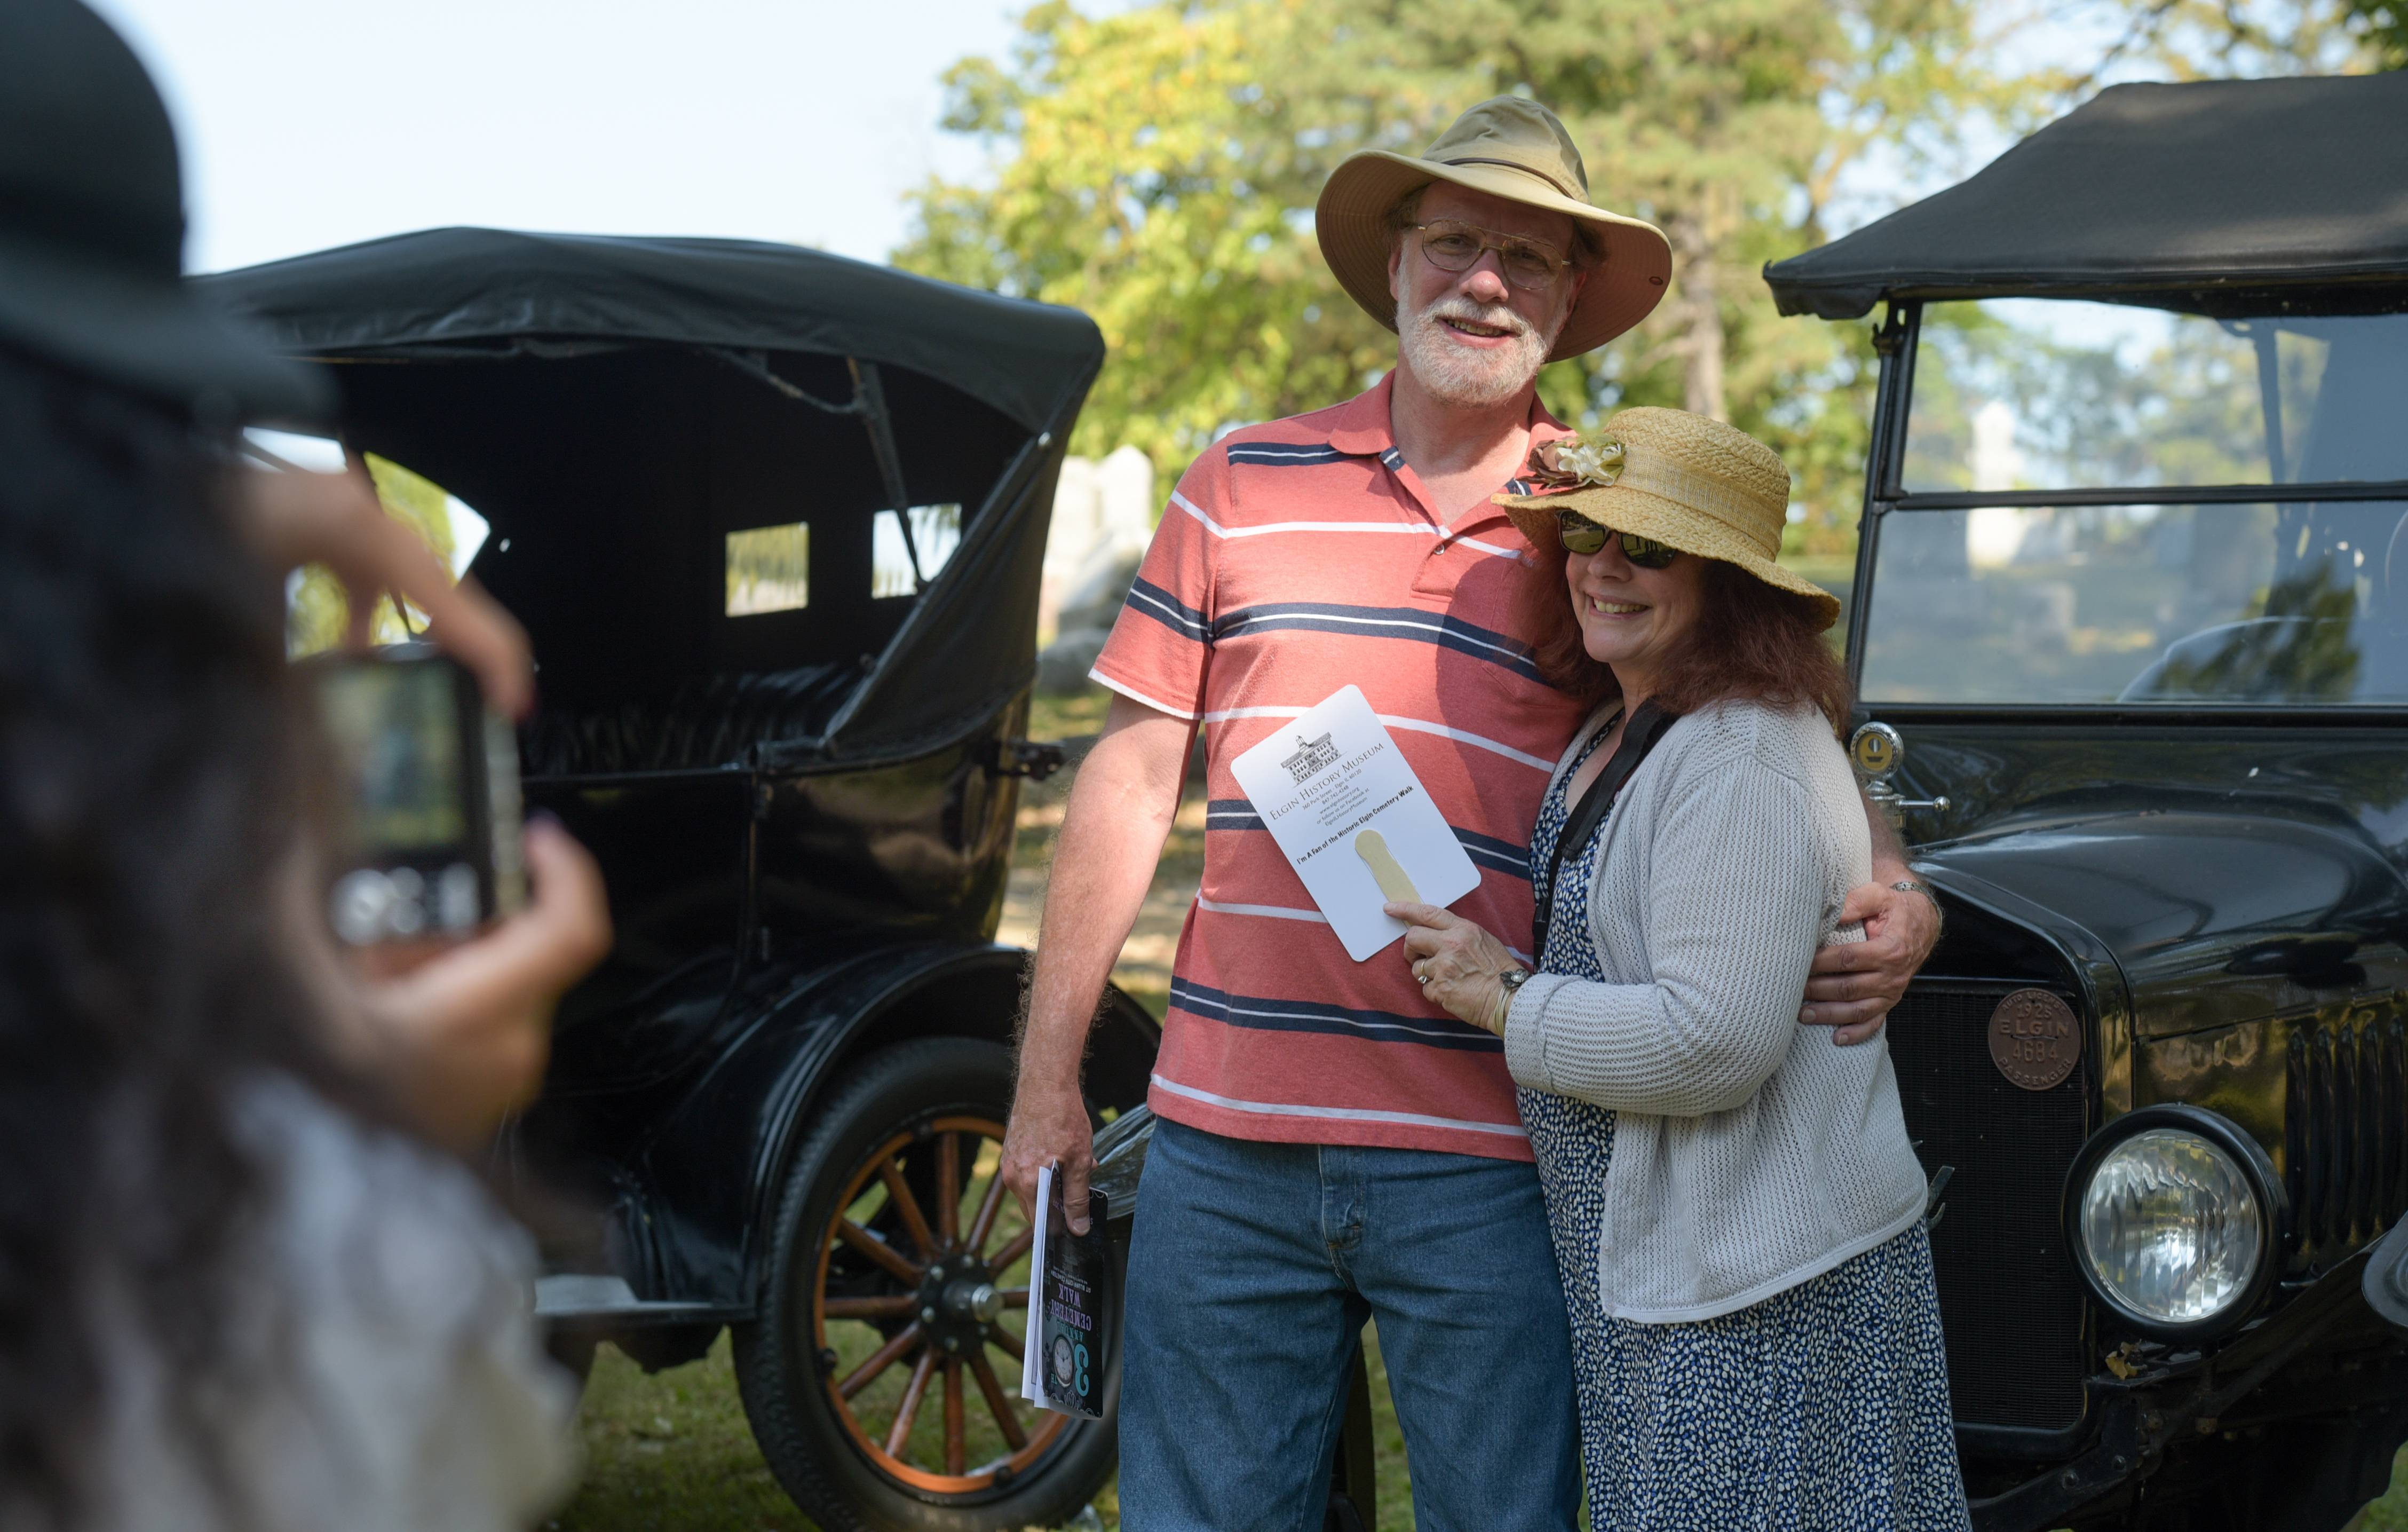 Dave Carlson and Mary Hogan of Elgin pose for a photo Sunday in front of a 1923 Ford Model T during the annual Elgin Cemetery Walk at Bluff City Cemetery.